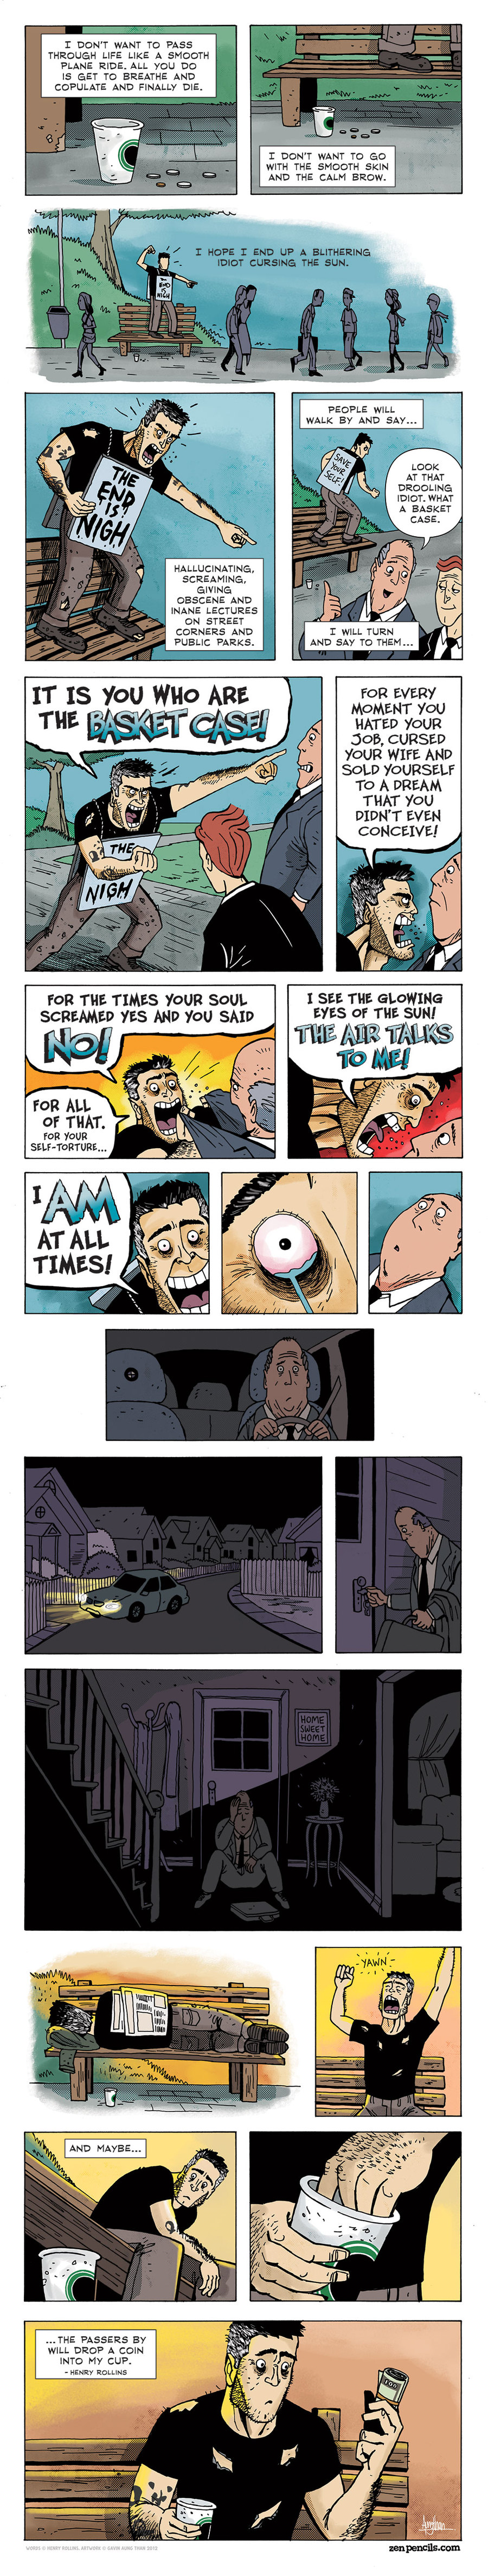 Zen Pencils for Oct 18, 2013 Comic Strip